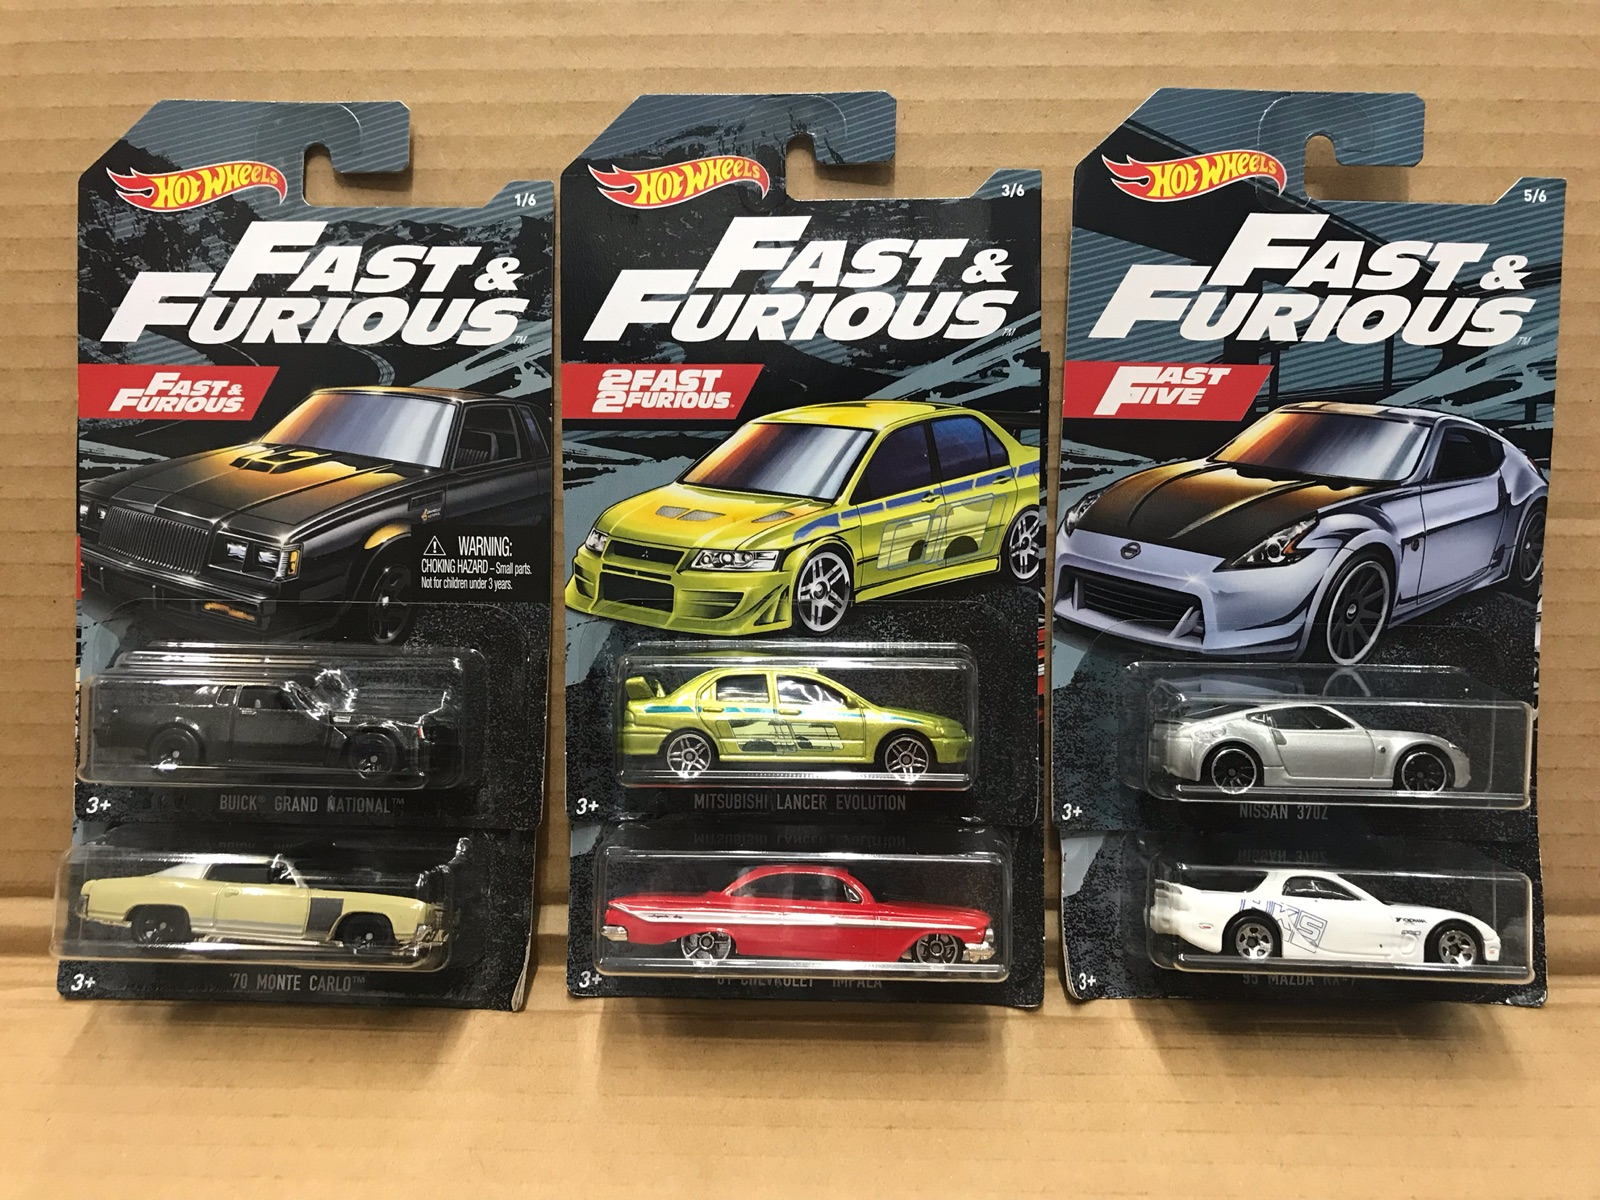 Hotwheels CARS 1/64 Fast Furious Mitsubishi Rx7 370z Collector Edition Metal Kids Toys Christmas Gift